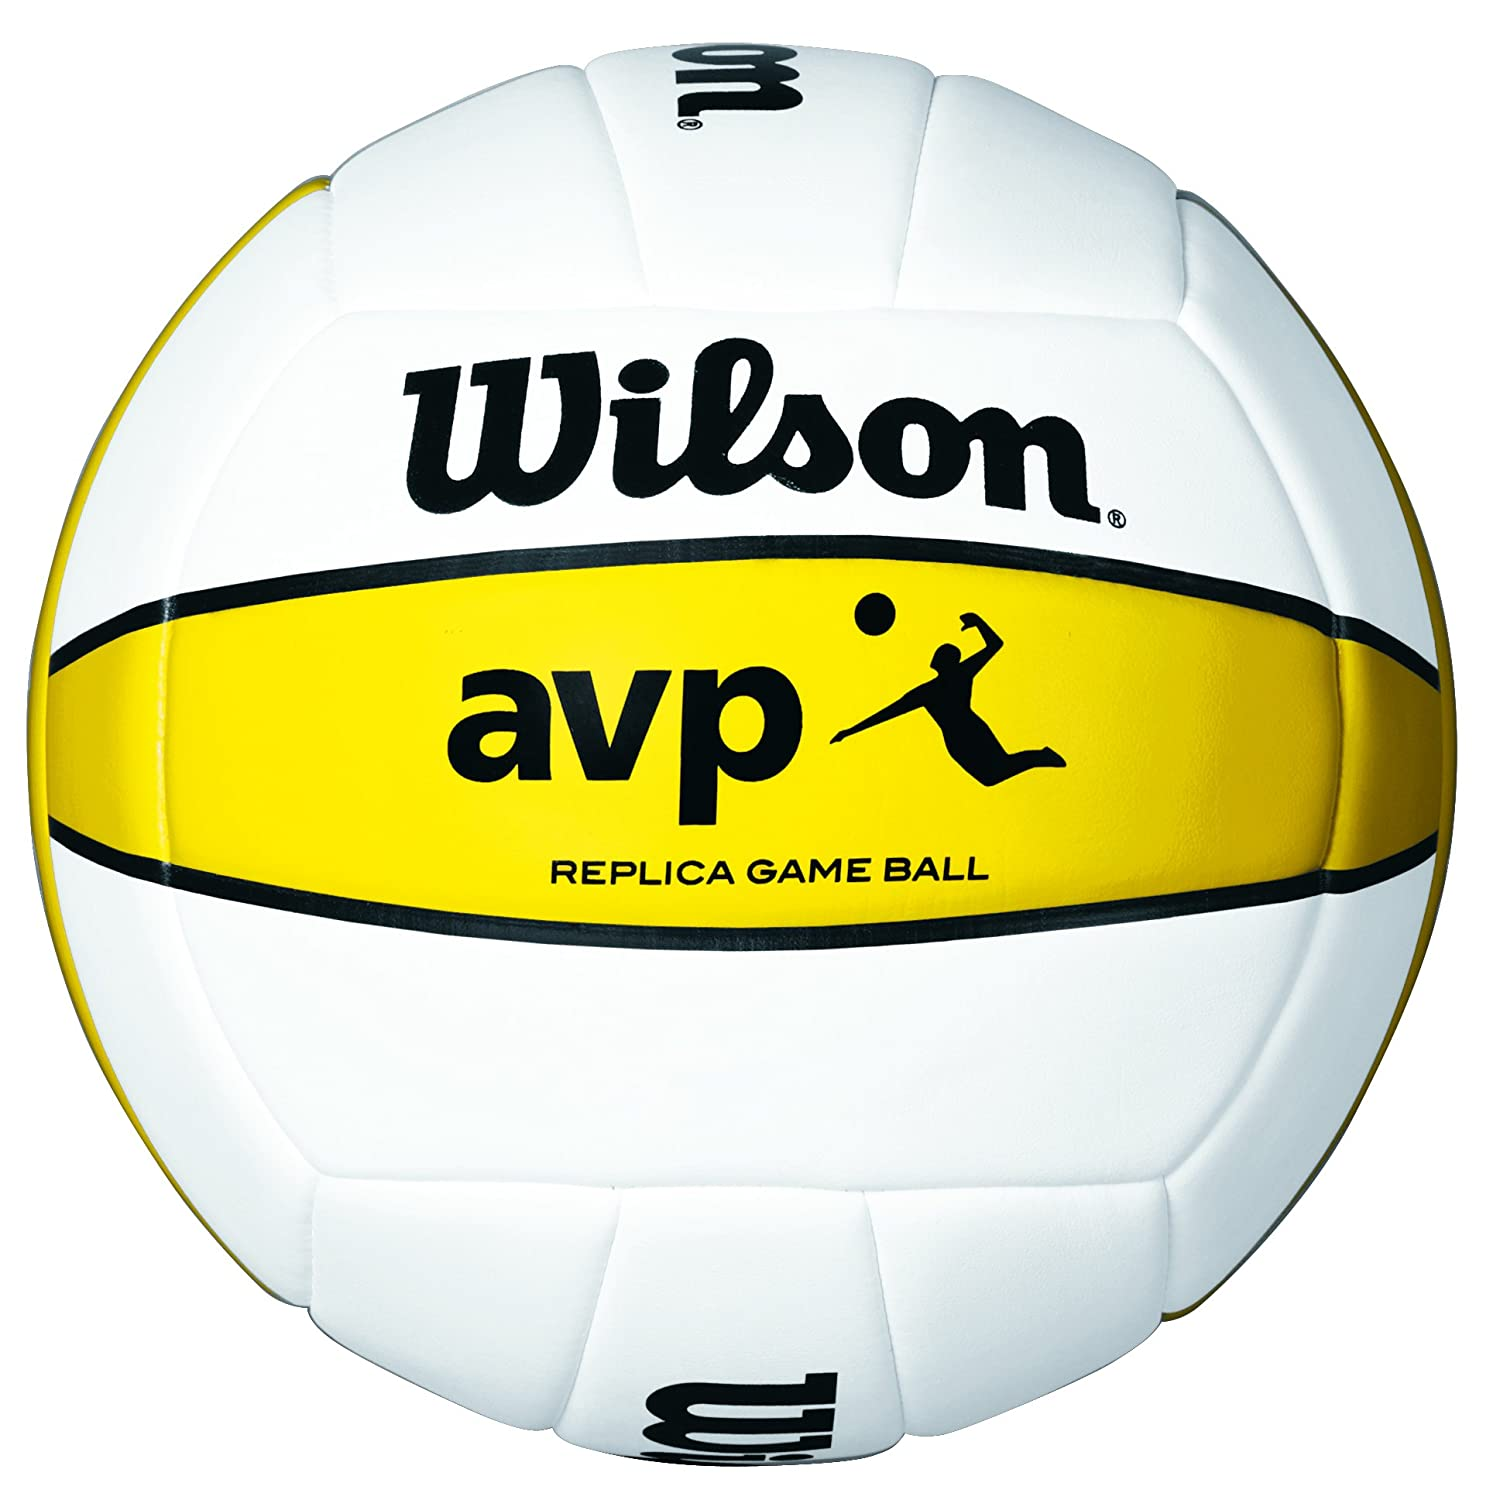 Wilson AVP Bola, Hombre, Blanco/Amarillo, 7 Wilson Teamsport AVP REPLICA deportes y aire libre; volleyball; volley playa; accesorios volleyball; balón volleyball